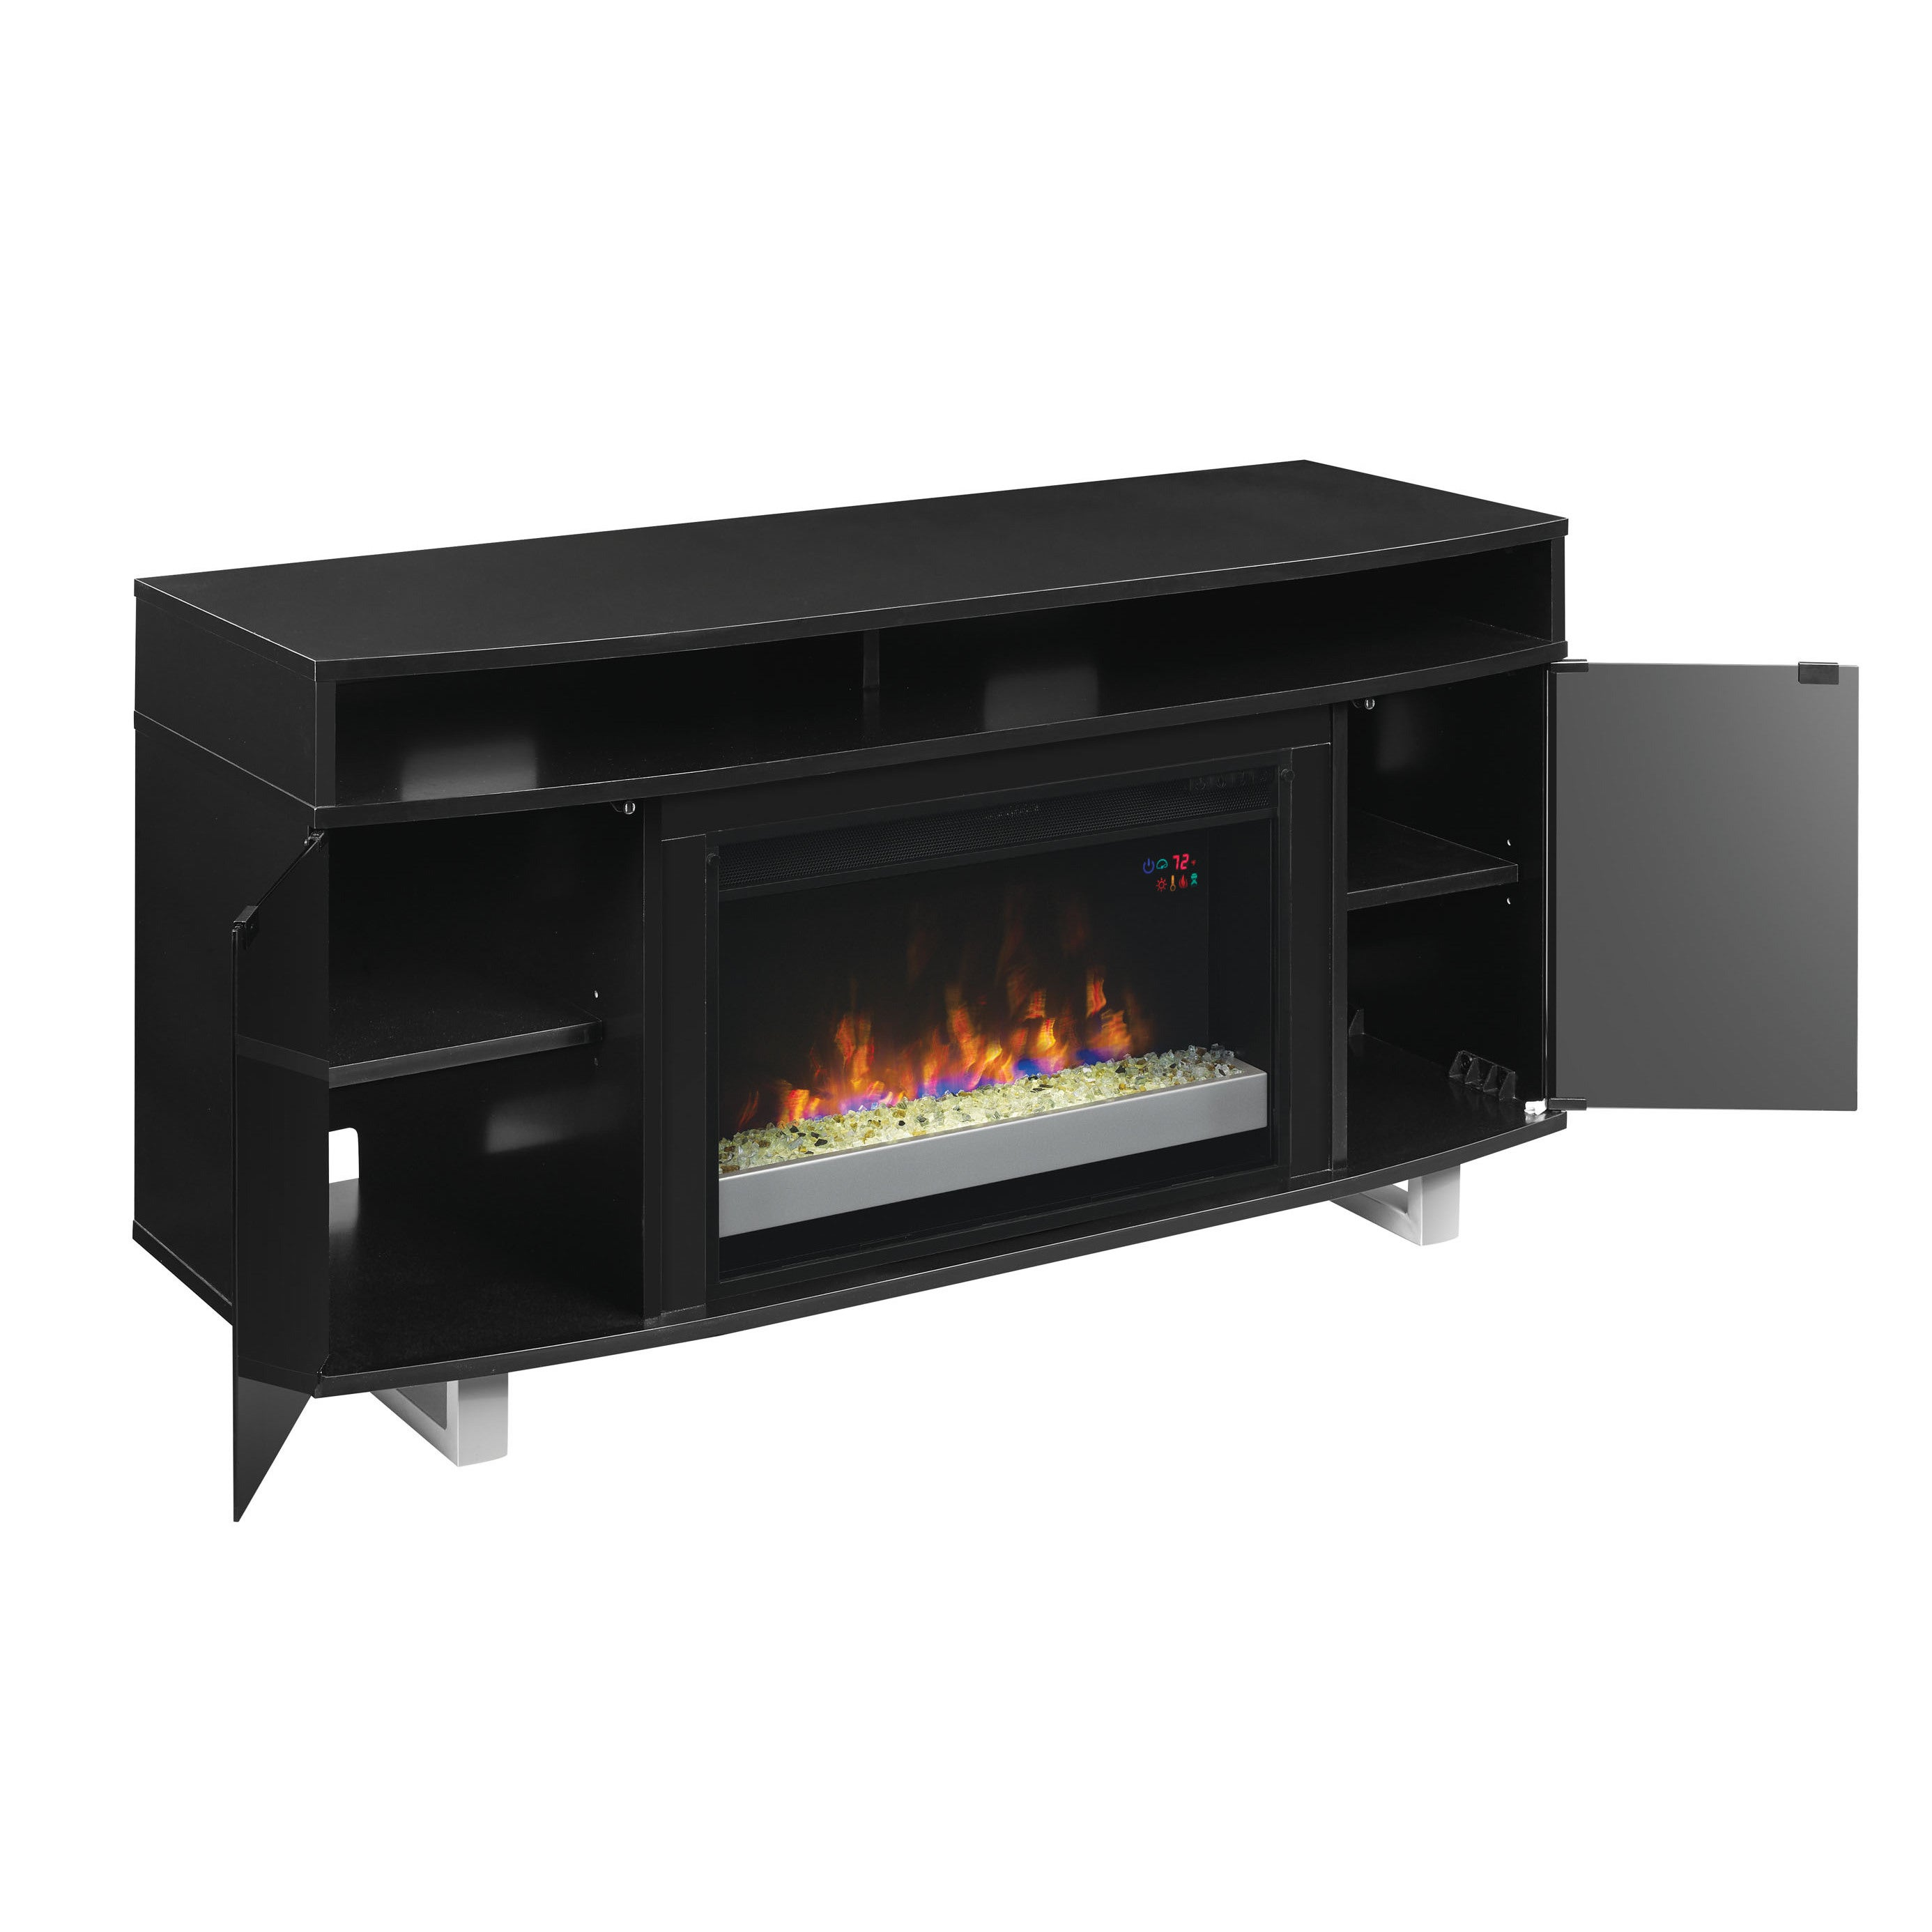 Enterprise Lite Tv Stand For Tvs Up To 60 With 26 Infrared Quartz Electric Fireplace Black Overstock 15076875